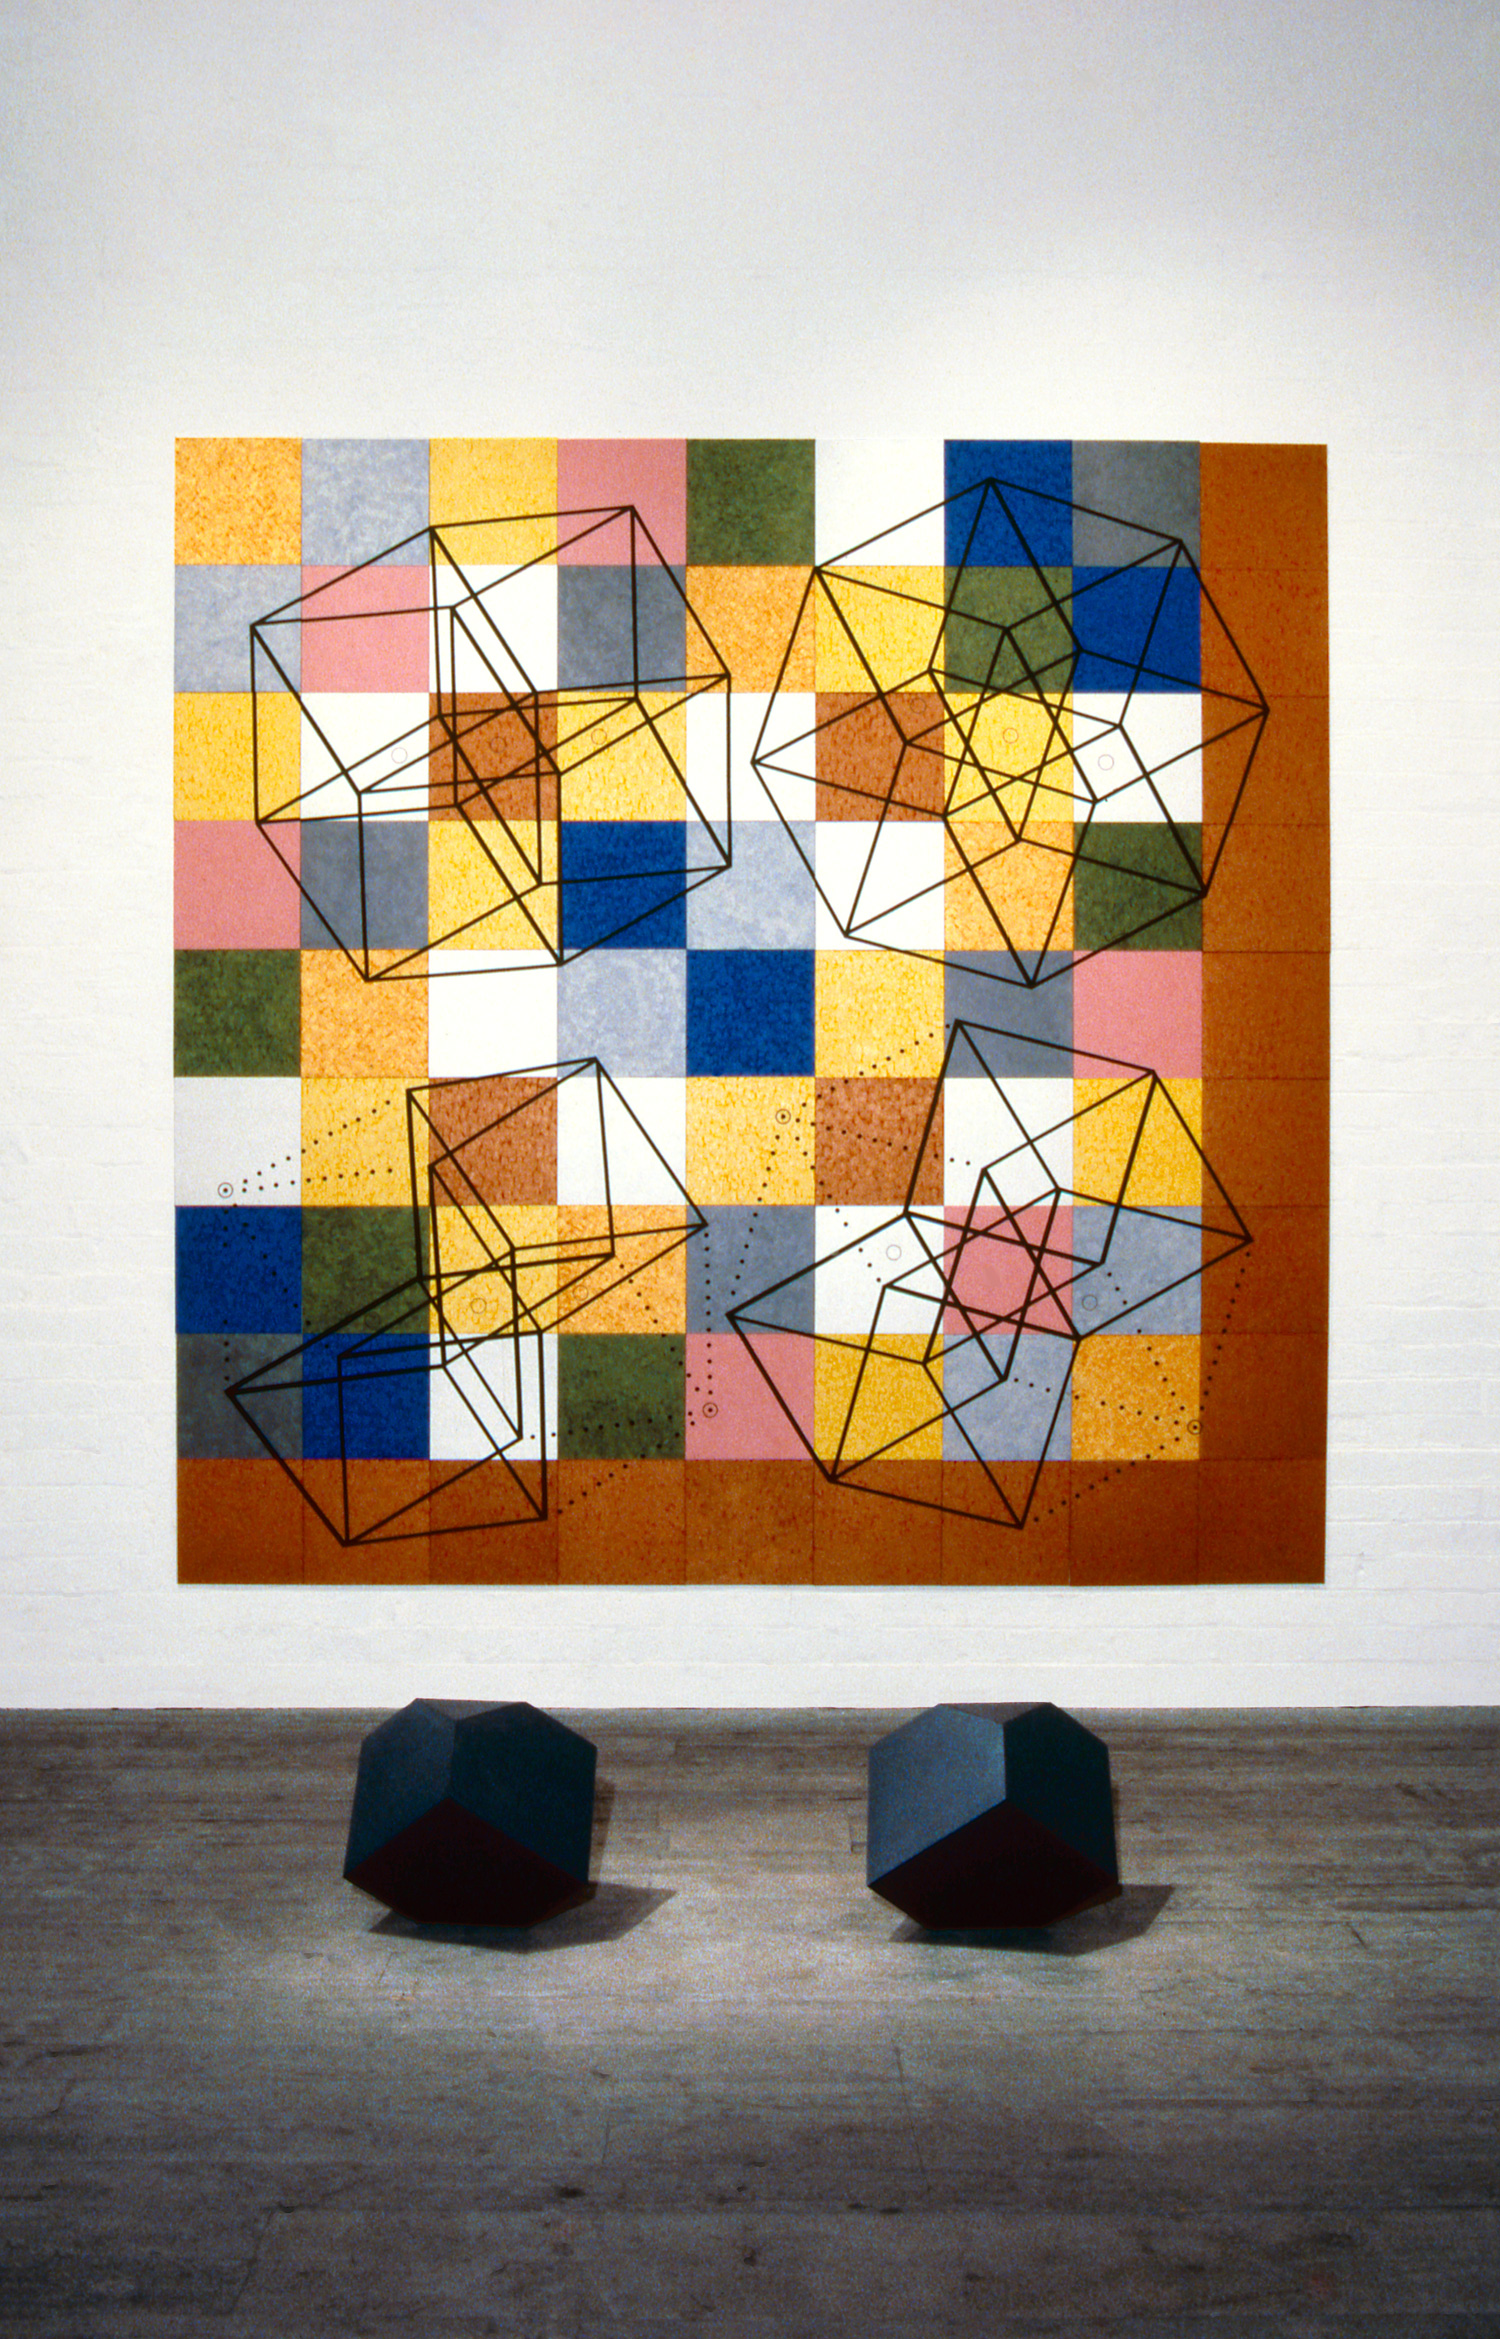 Re-Vision (Melancolia),  1987 Wall: Acrylic, mica and tape on 81 canvas boards, 274 x 274cm Floor: Wood, sand and formica, 48 x 48 x 48cm each